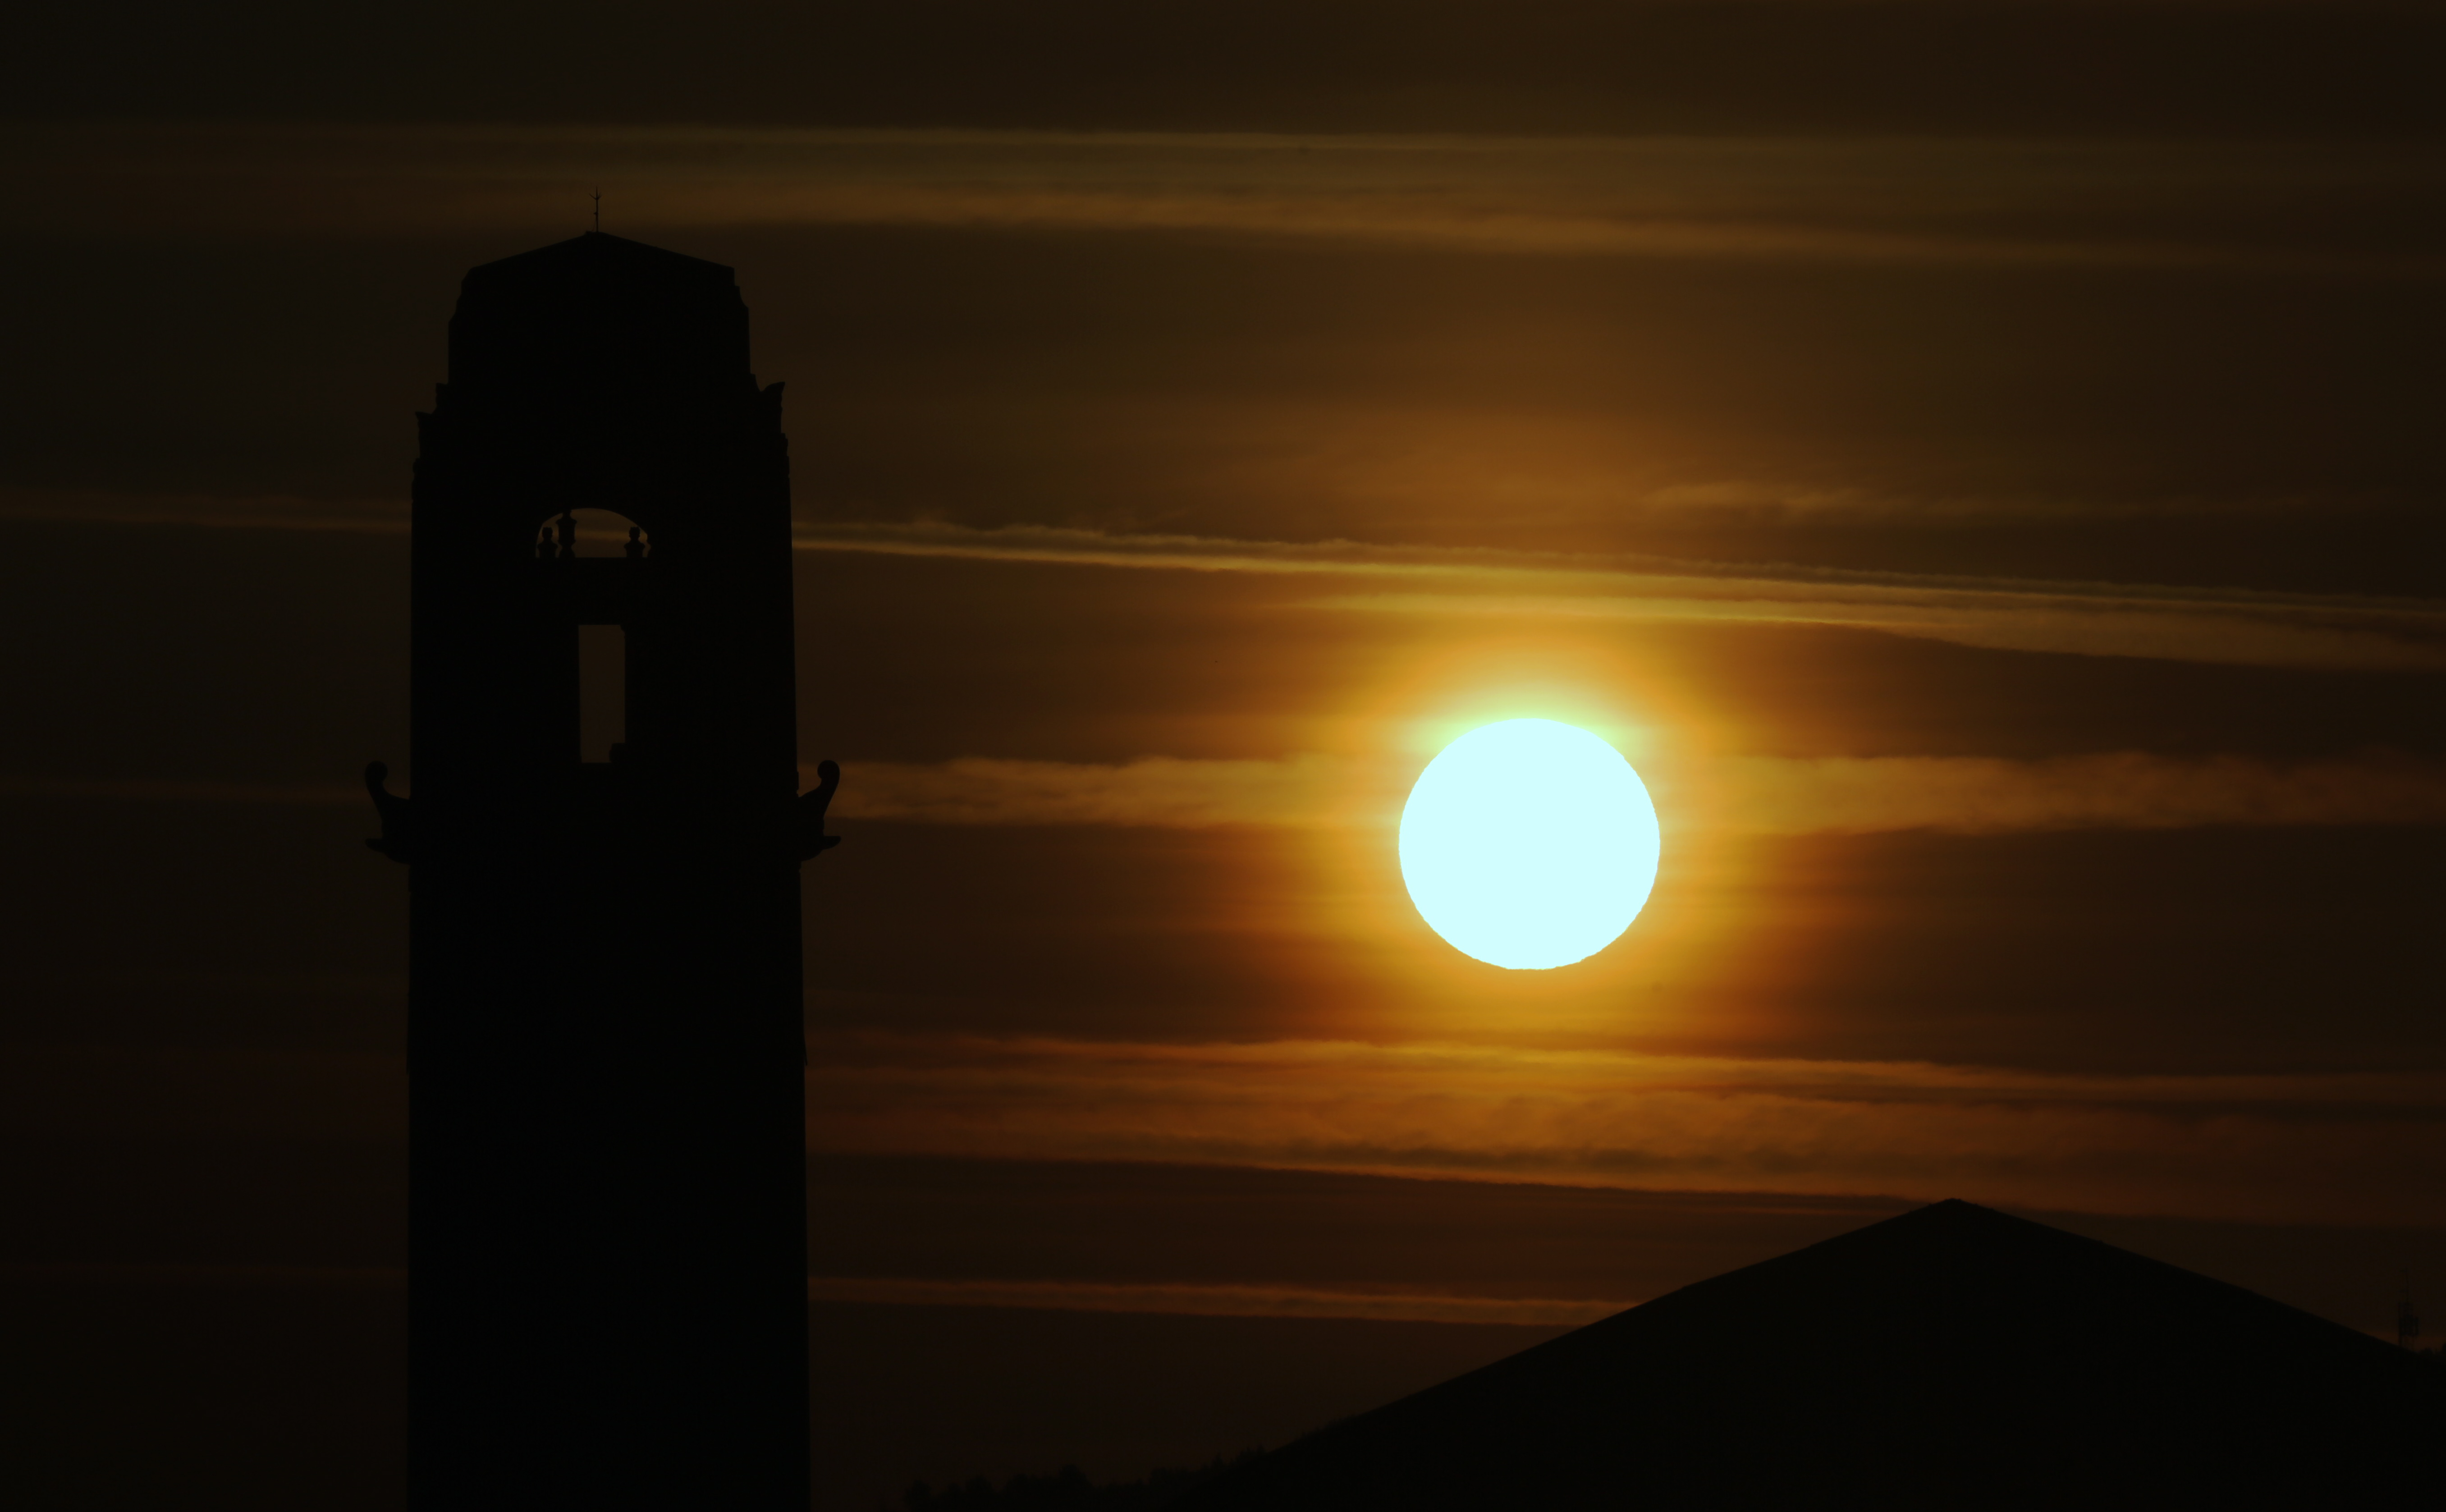 Pictured: The sun rises over the clock tower of the Guild Hall in Swansea, south Wales, UK. Wednesday 21 June 2017 Re: Summer Solstice